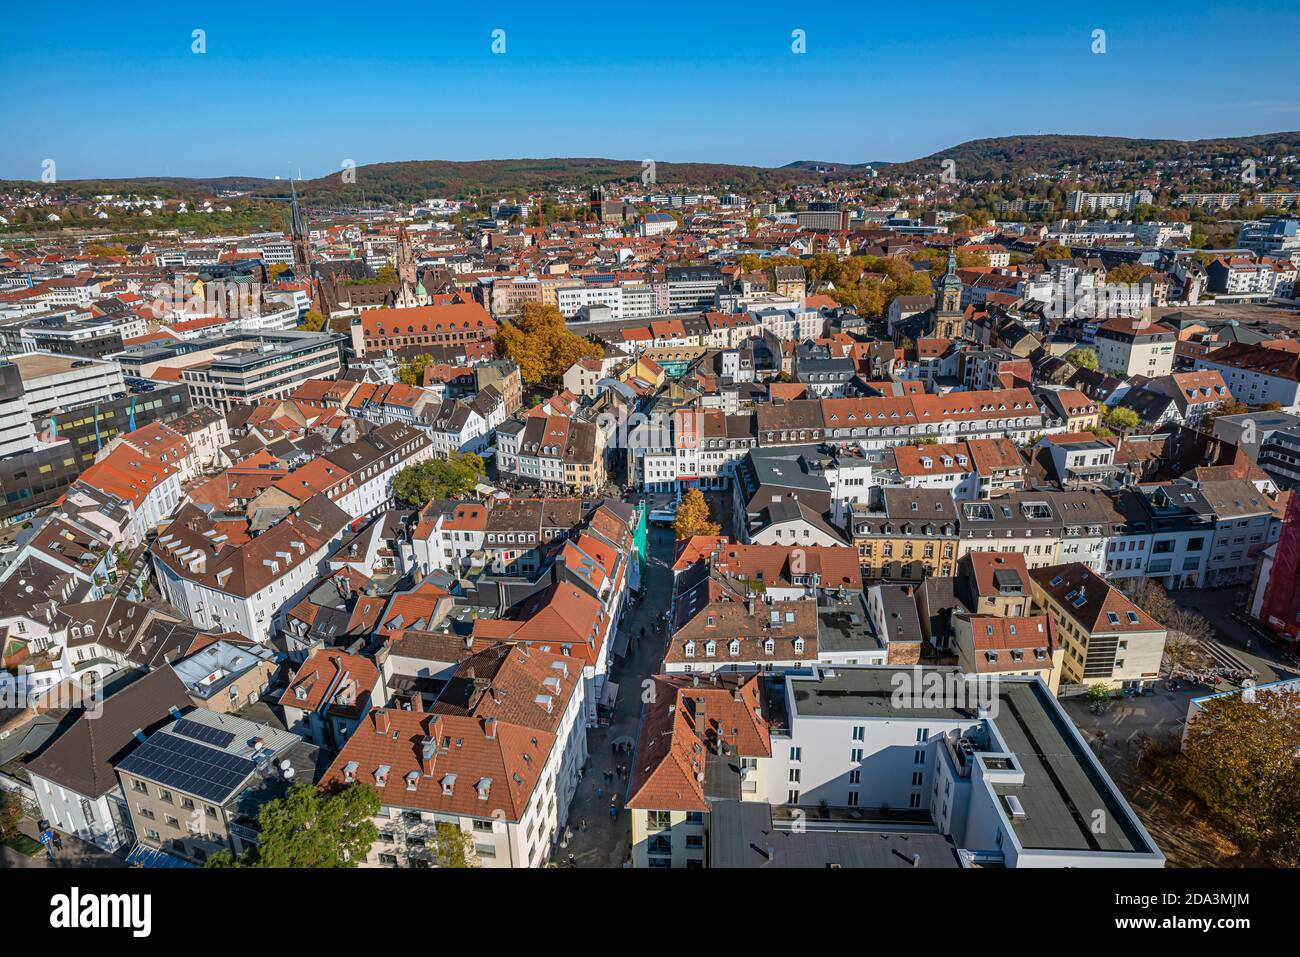 Architekt Saarland Capital City Of Saarland High Resolution Stock Photography And Images - Alamy